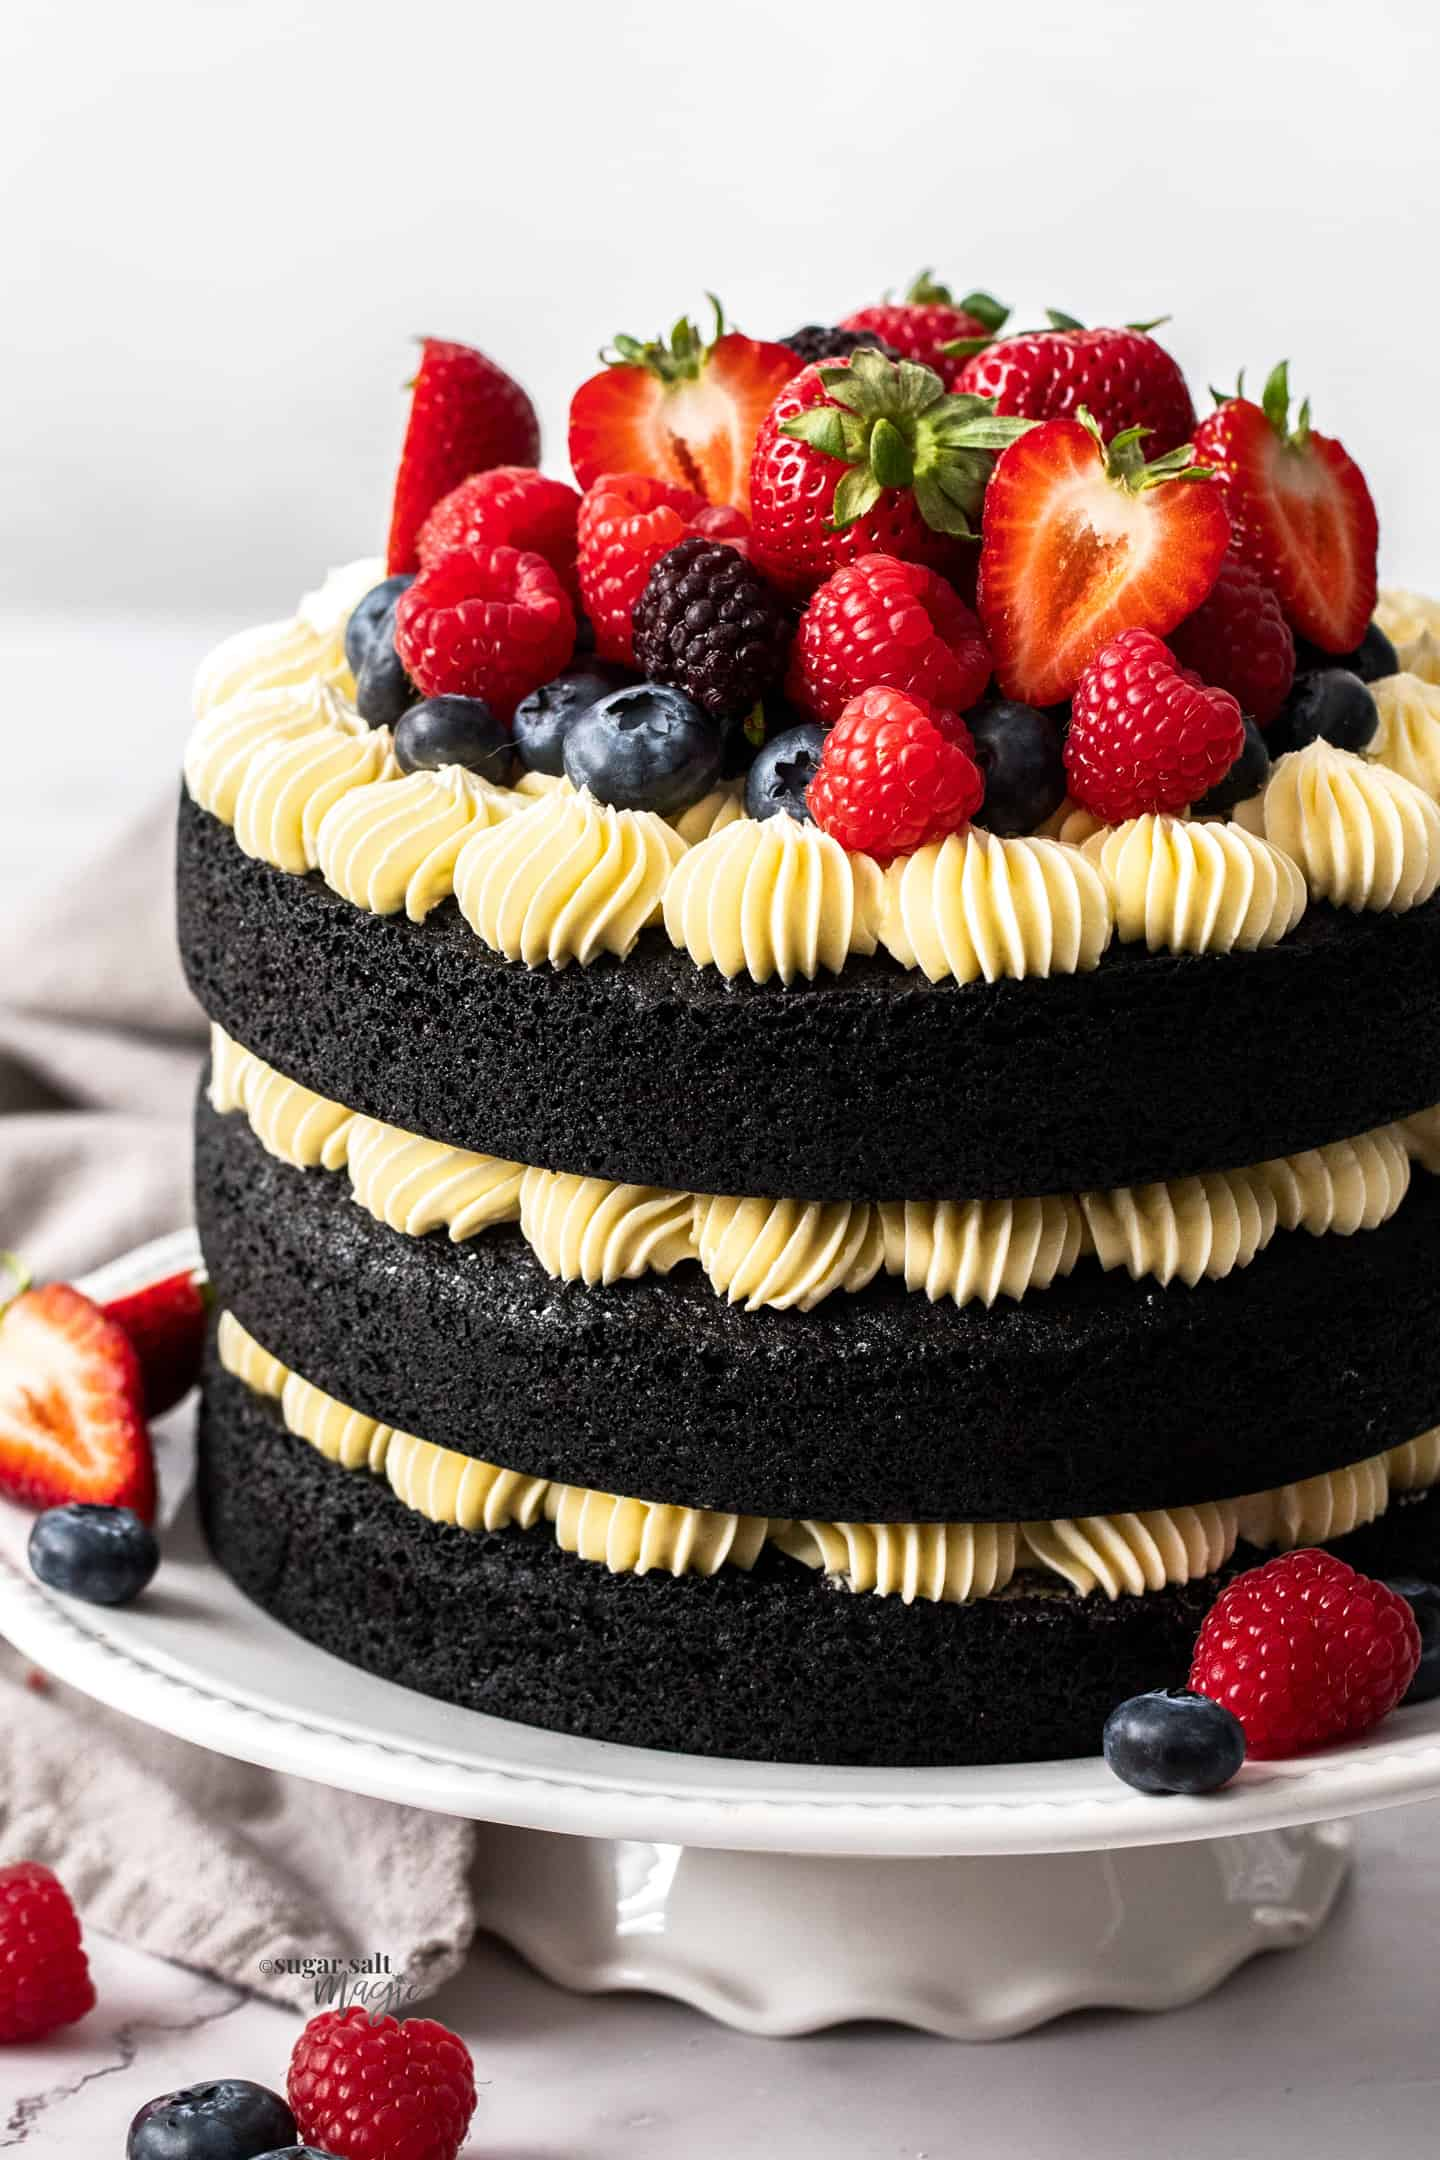 Closeup of a 3 tier black velvet cake with white frosting and berries.